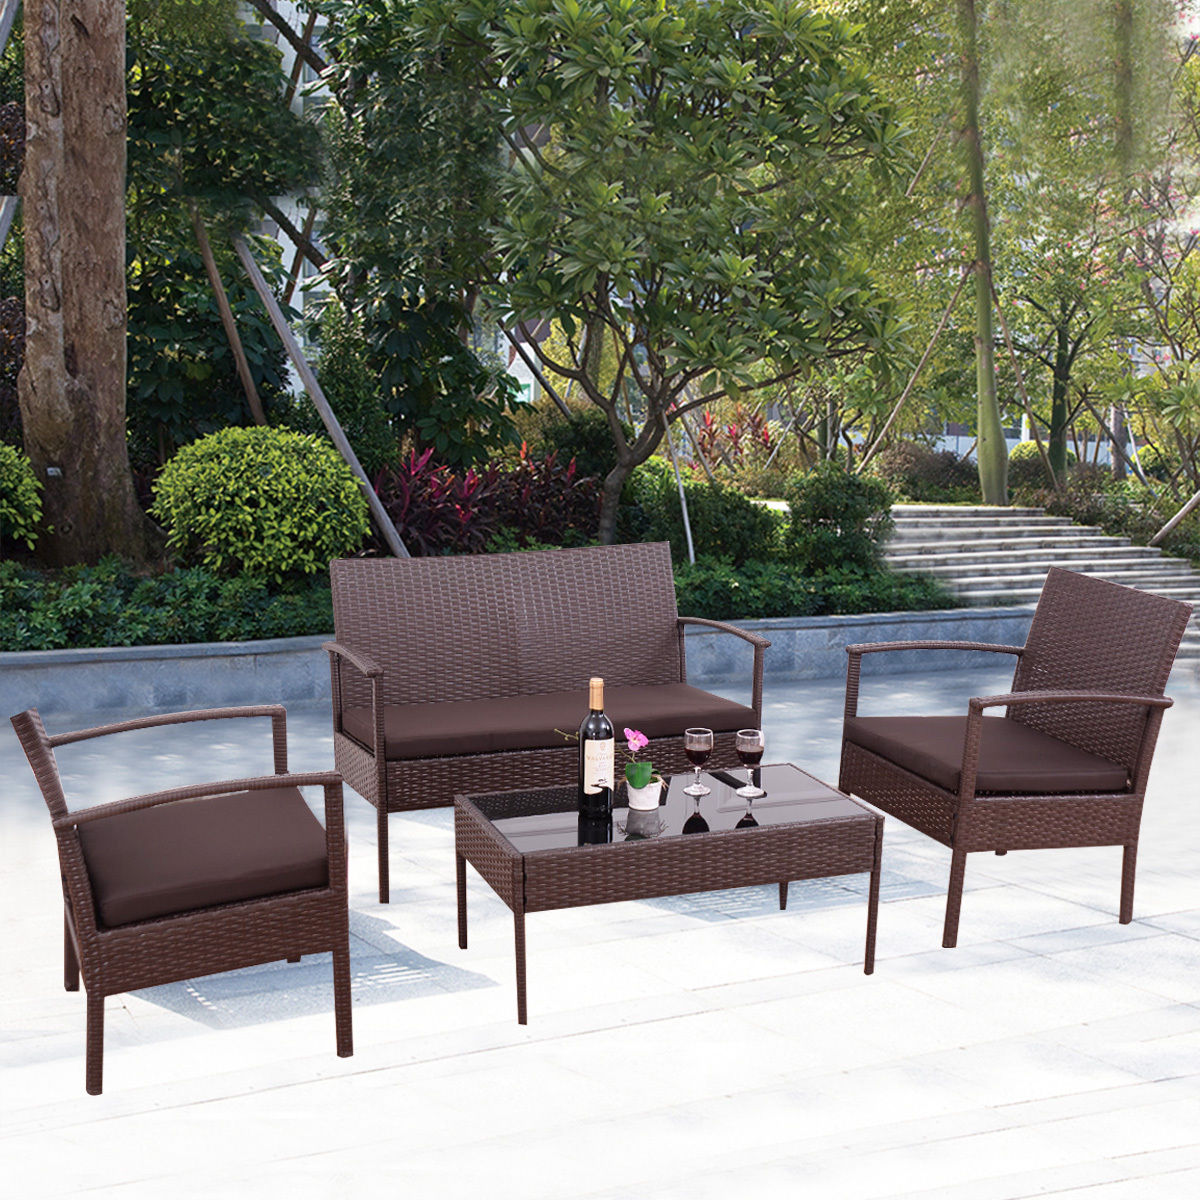 Costway 4 PCS Patio Rattan Wicker Furniture Set Brown Loveseat Sofa Cushioned Garden Yard by Costway